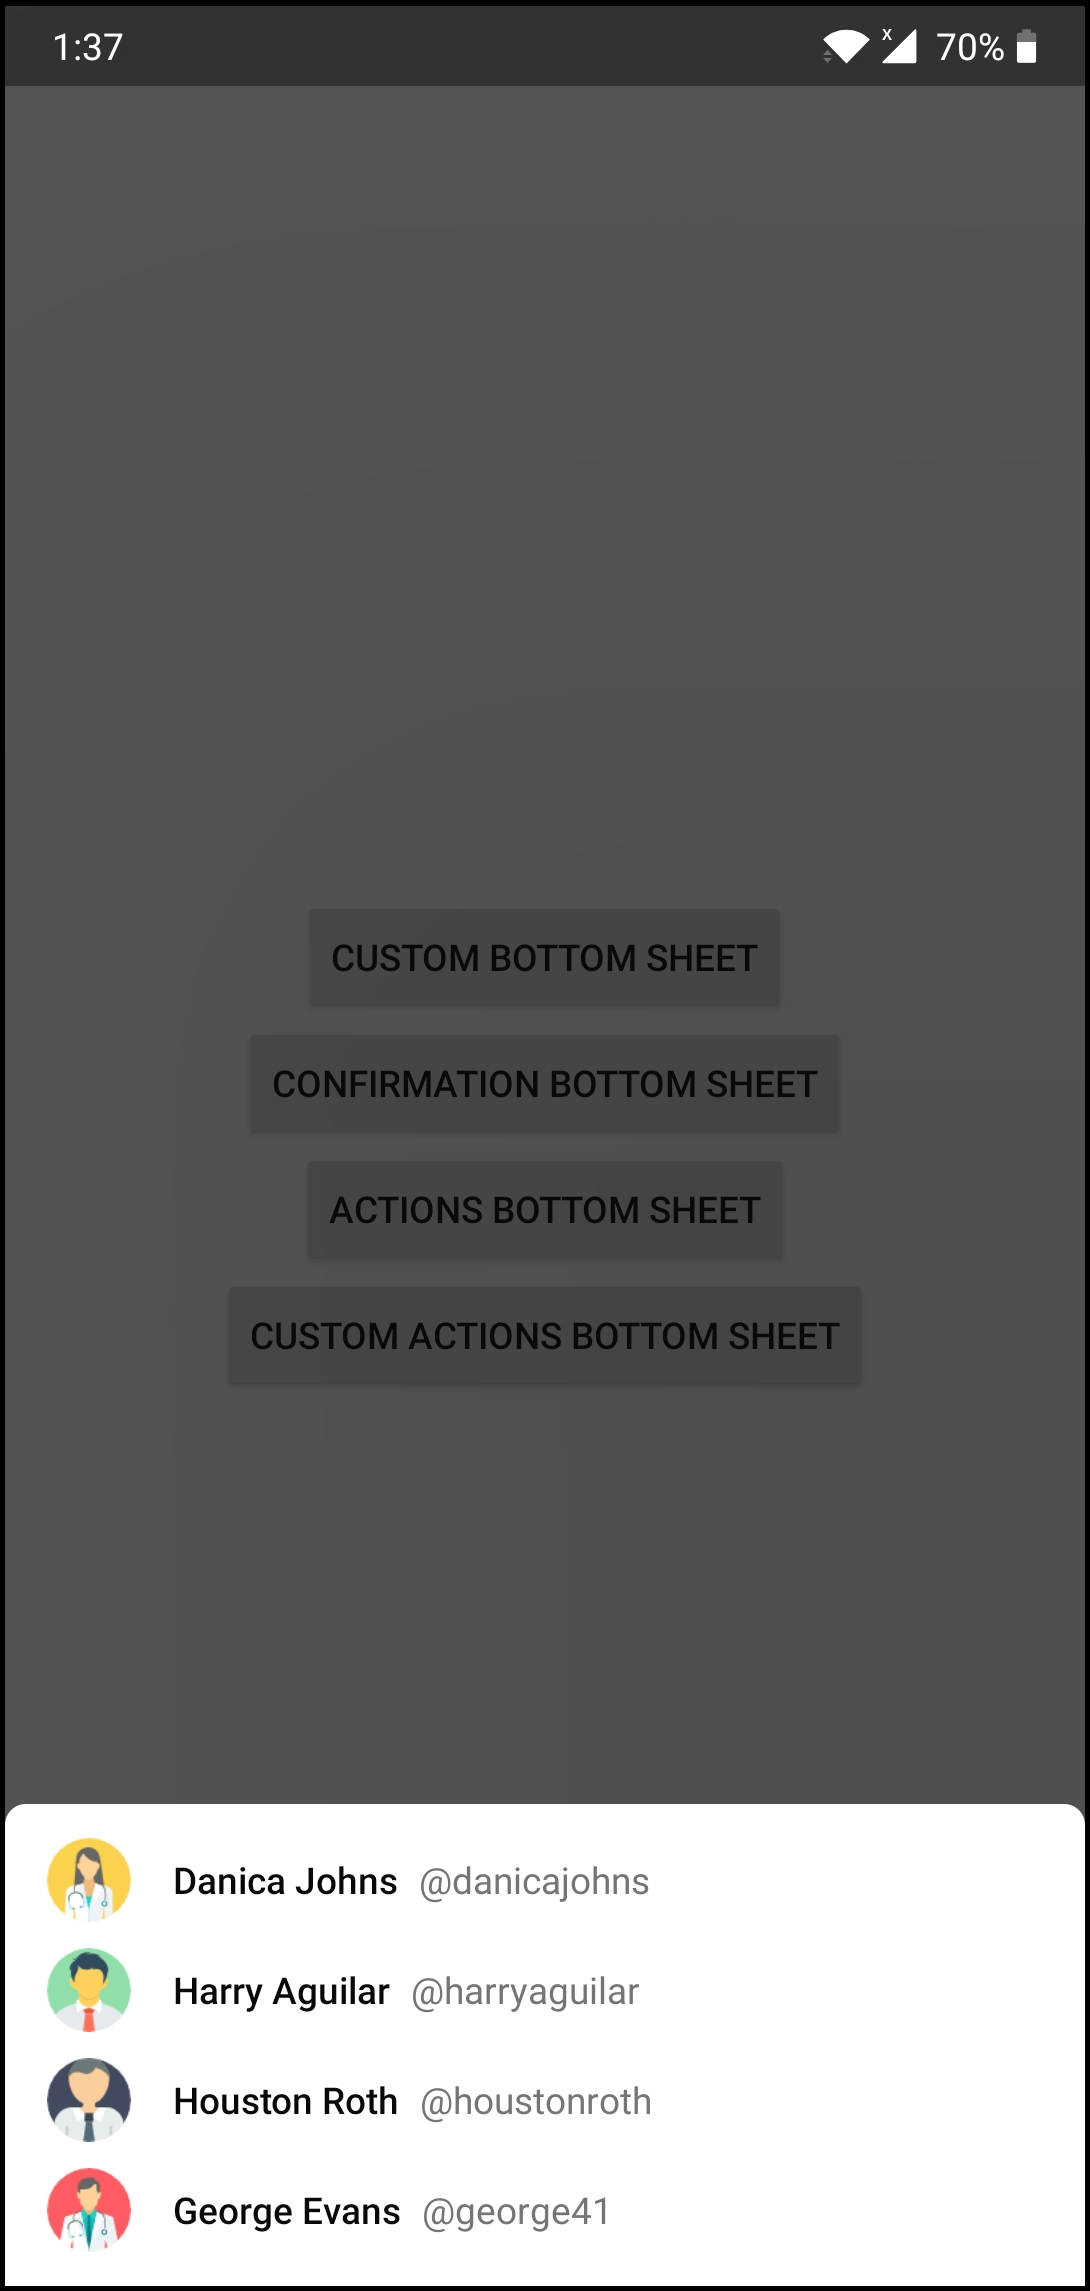 Material Bottom Sheets library for Android